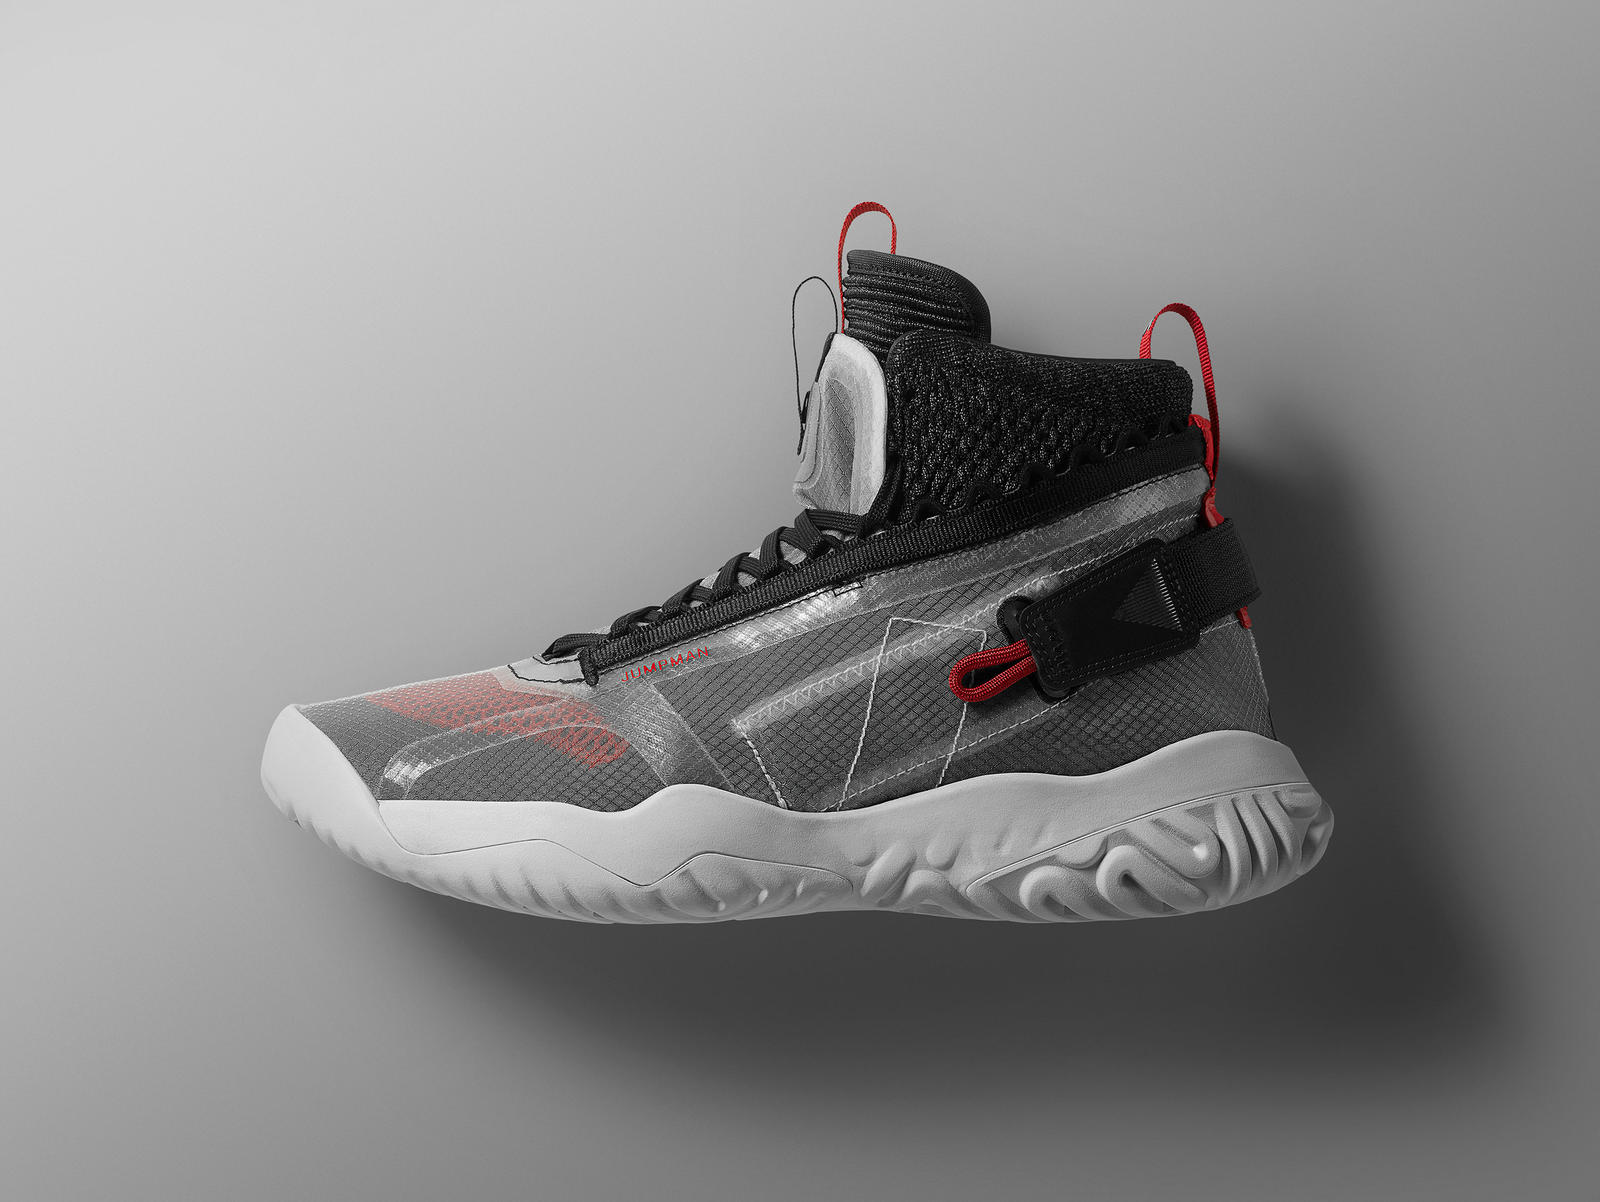 on sale dcd51 c1792 Flight Utility. Jordan Apex Utility 1. The Air Jordan XXXIII introduces ...